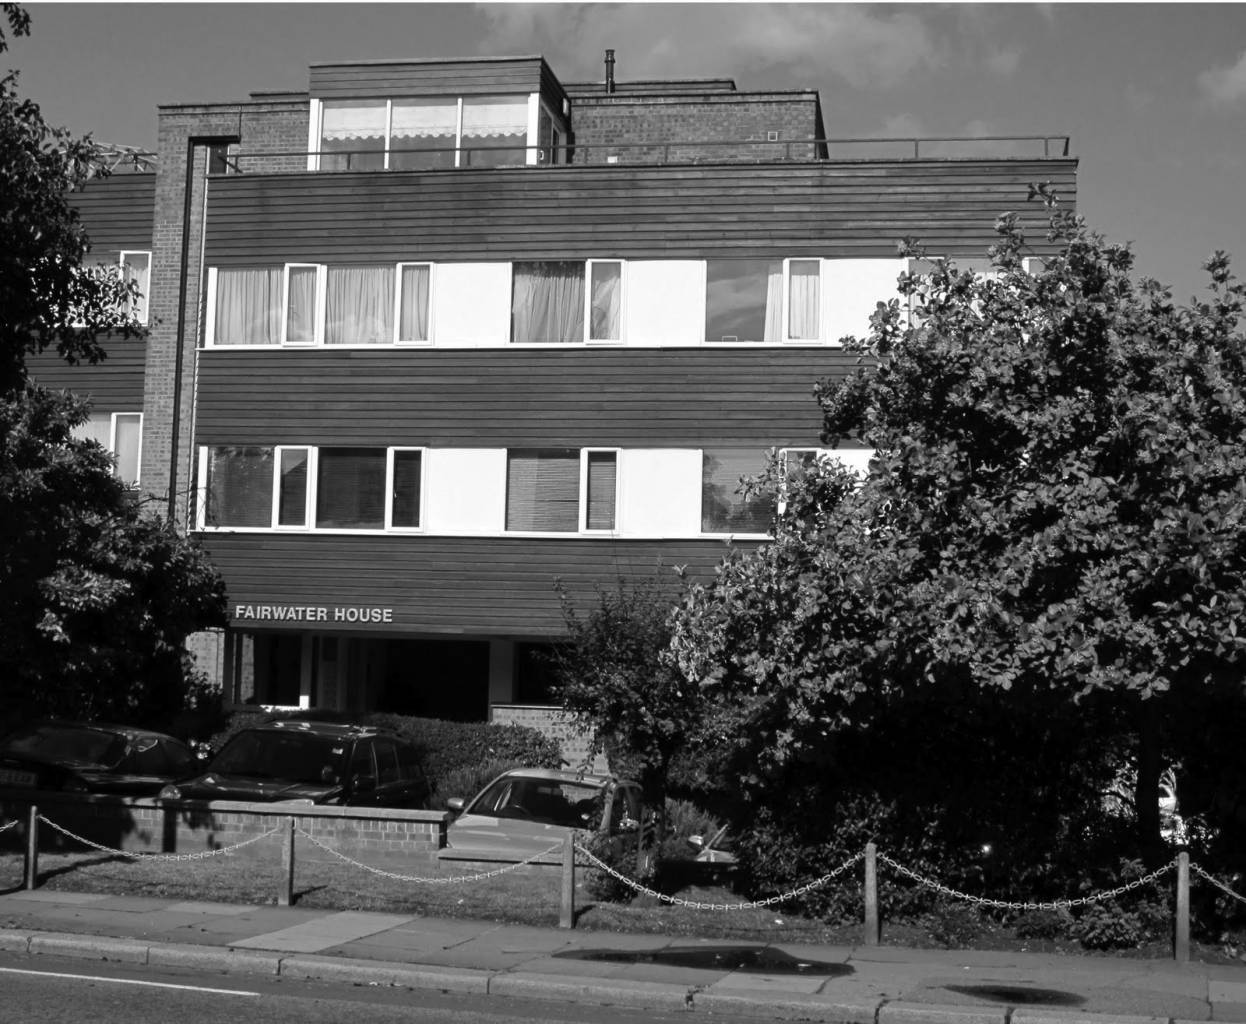 Benny Hill's flat was on the second floor of Fairwater House in Twickenham.